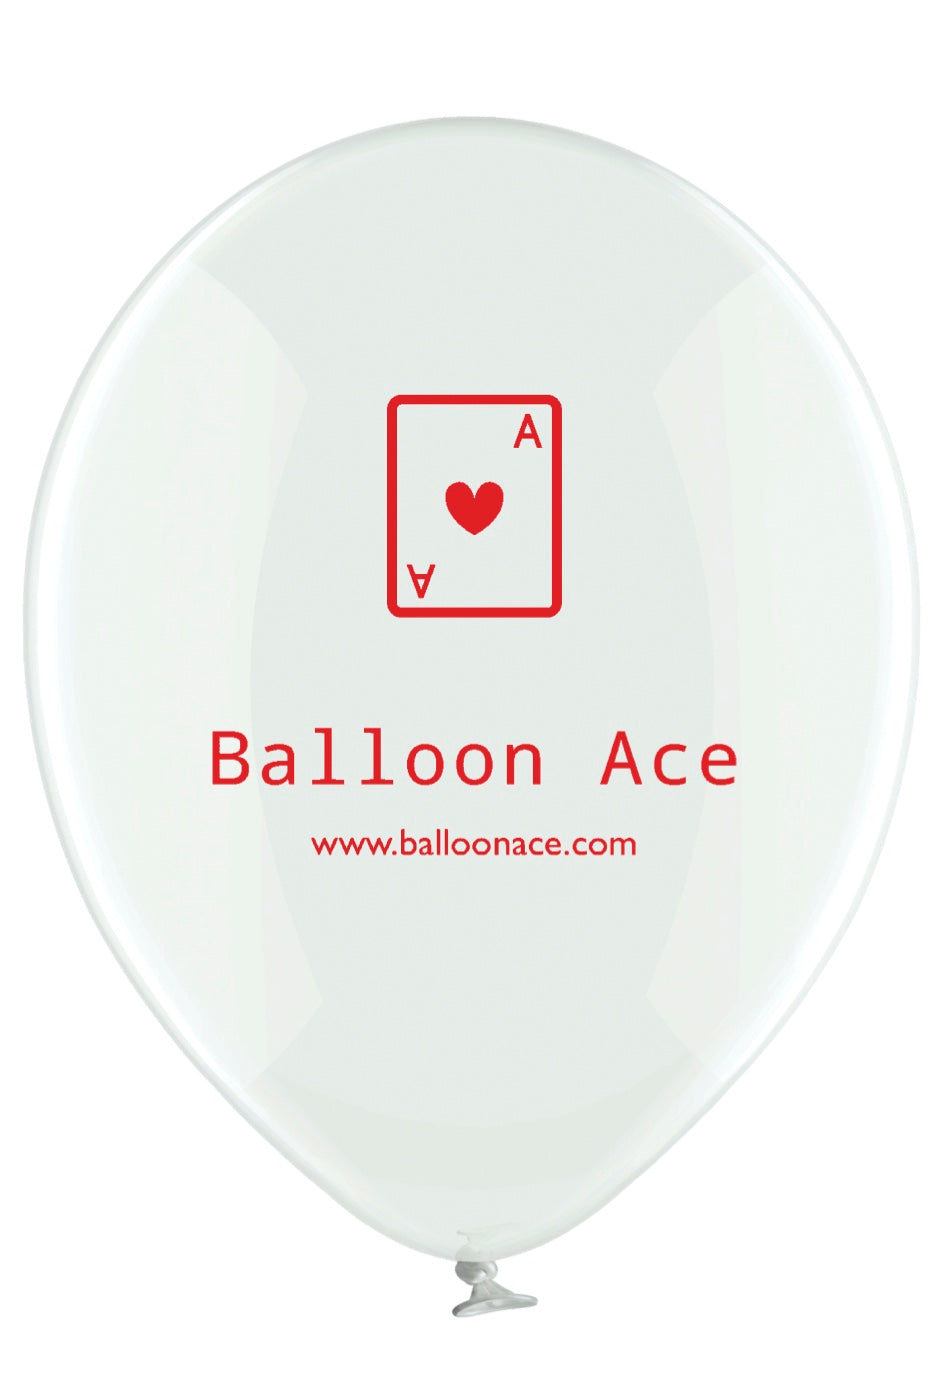 Balloon Ace red logo (Belbal) custom printed balloons